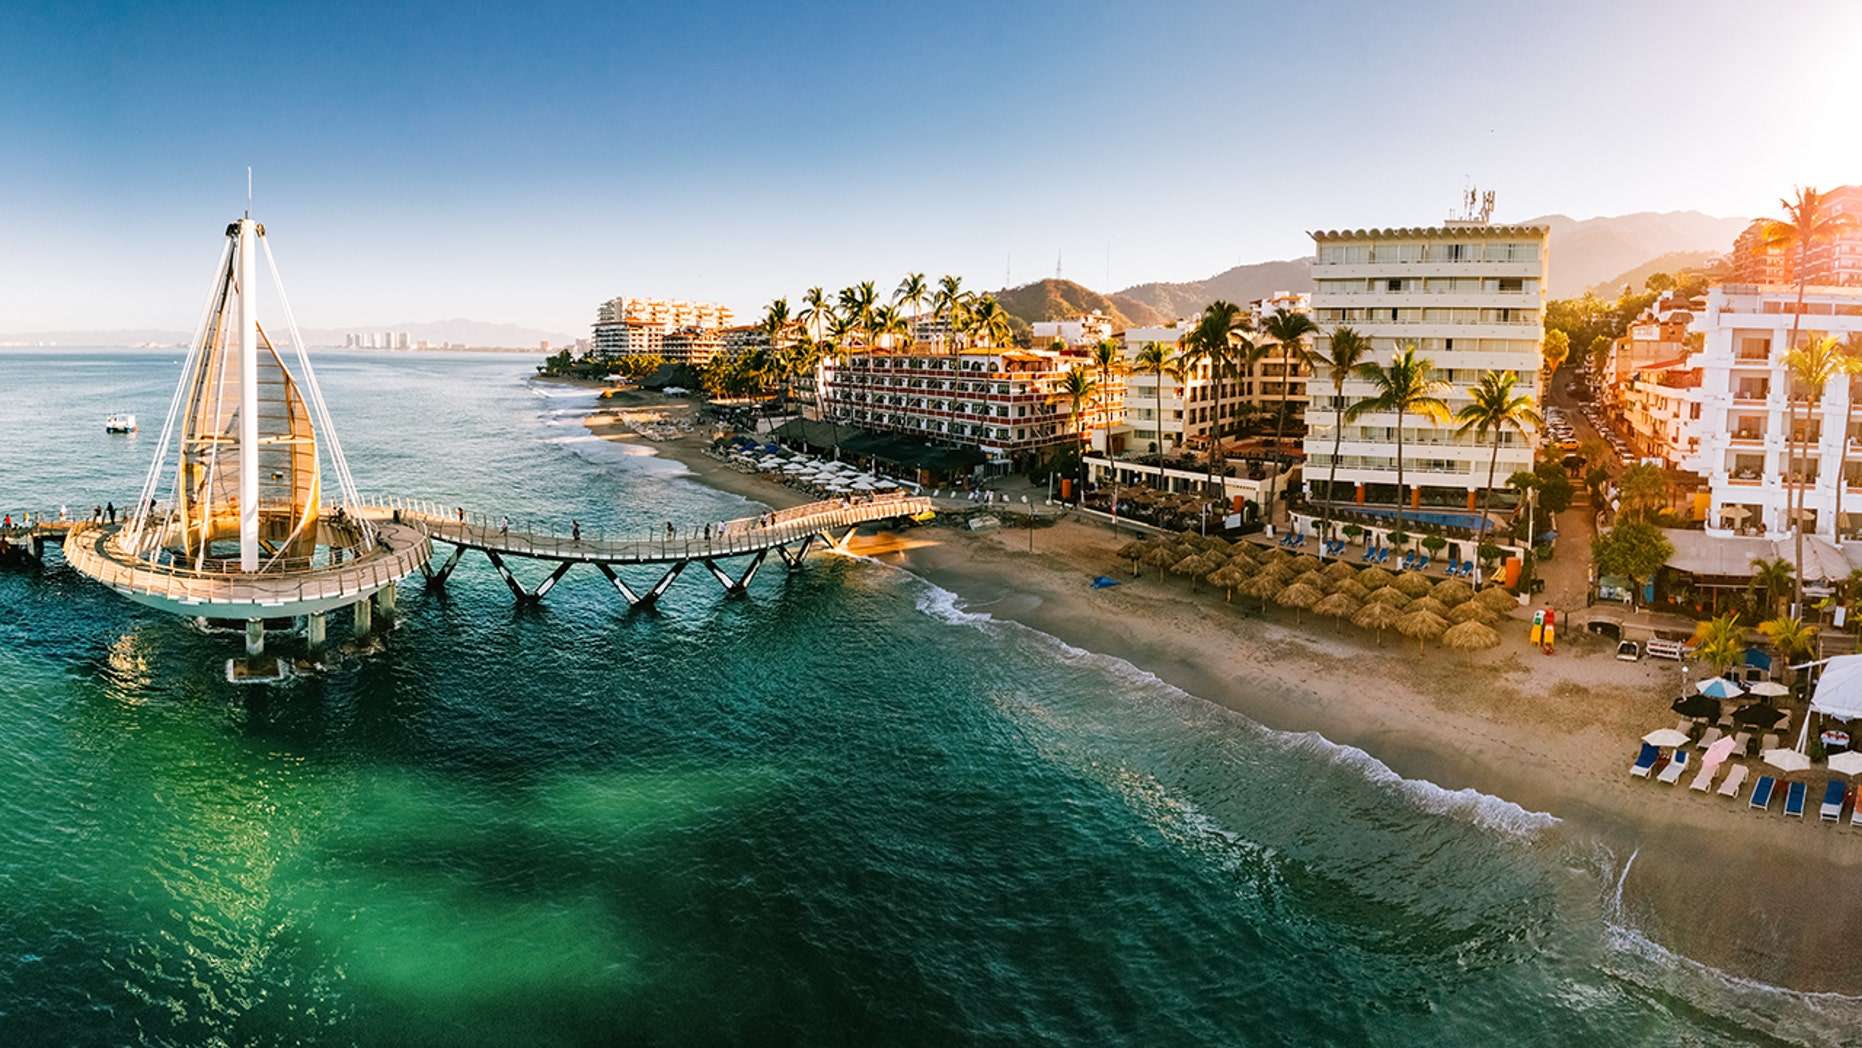 A stay in Puerto Vallarta is the perfect opportunity to soak up the area's culture, sun and cuisine.